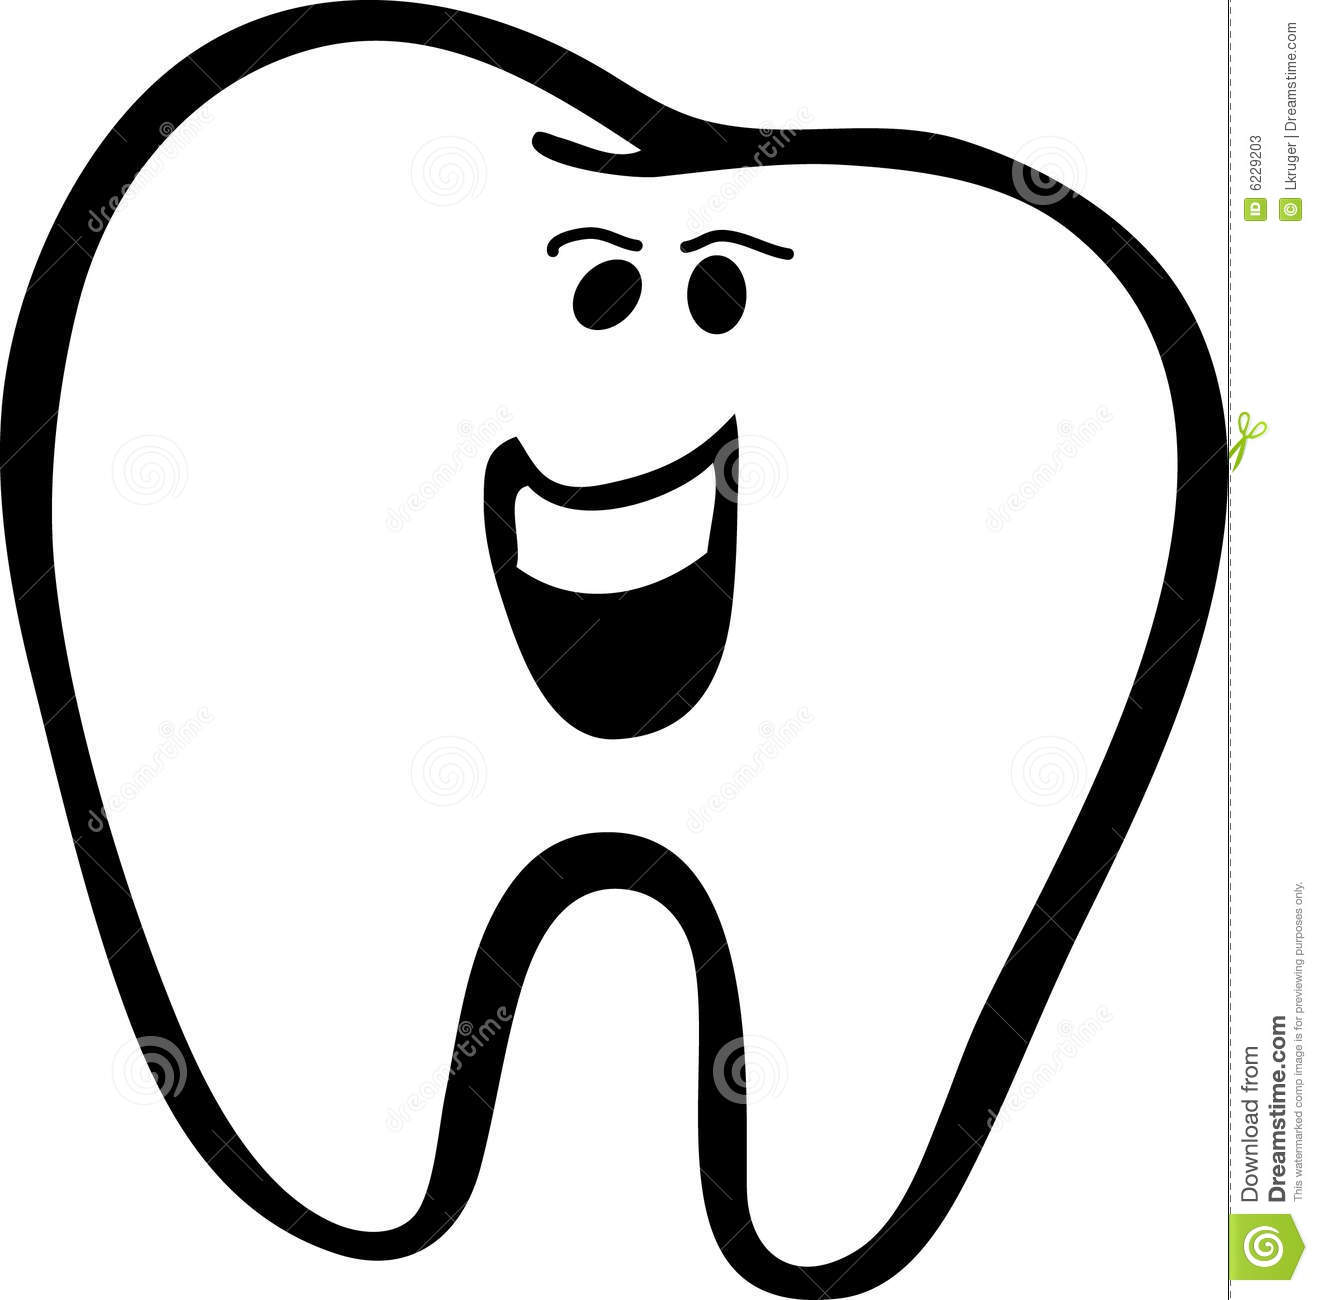 Cute tooth with hearts clipart picture transparent library Cute tooth with hearts clipart - ClipartFest picture transparent library